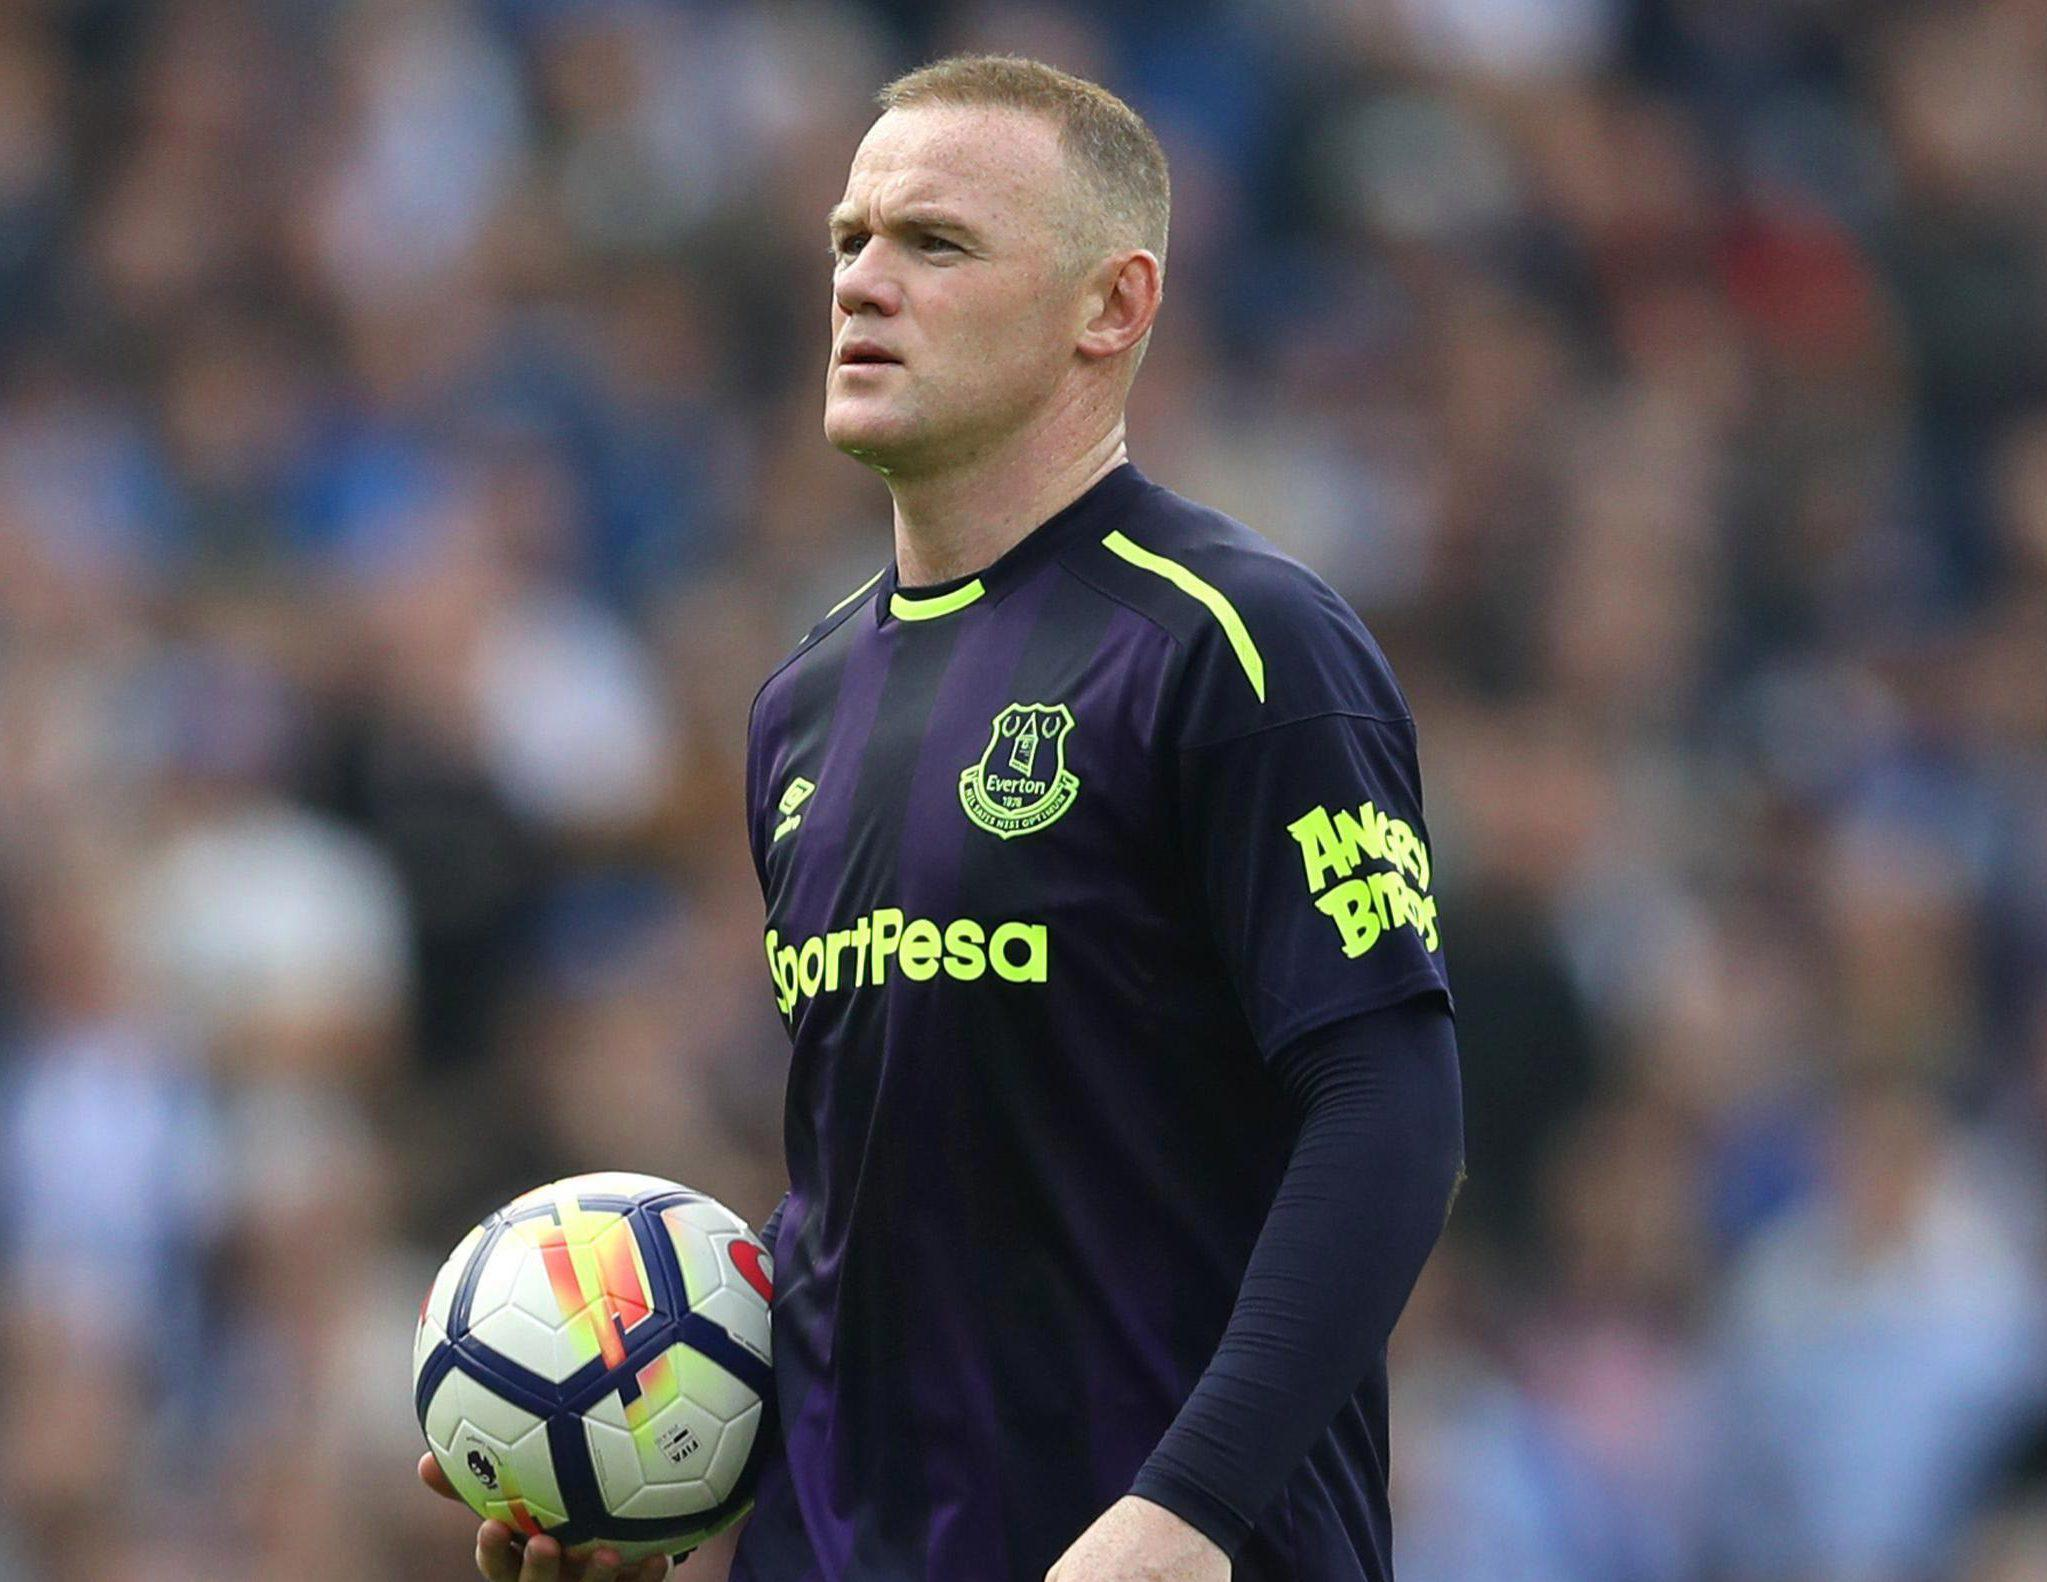 Ronald Koeman has hailed Wayne Rooney after his late penalty against Brighton